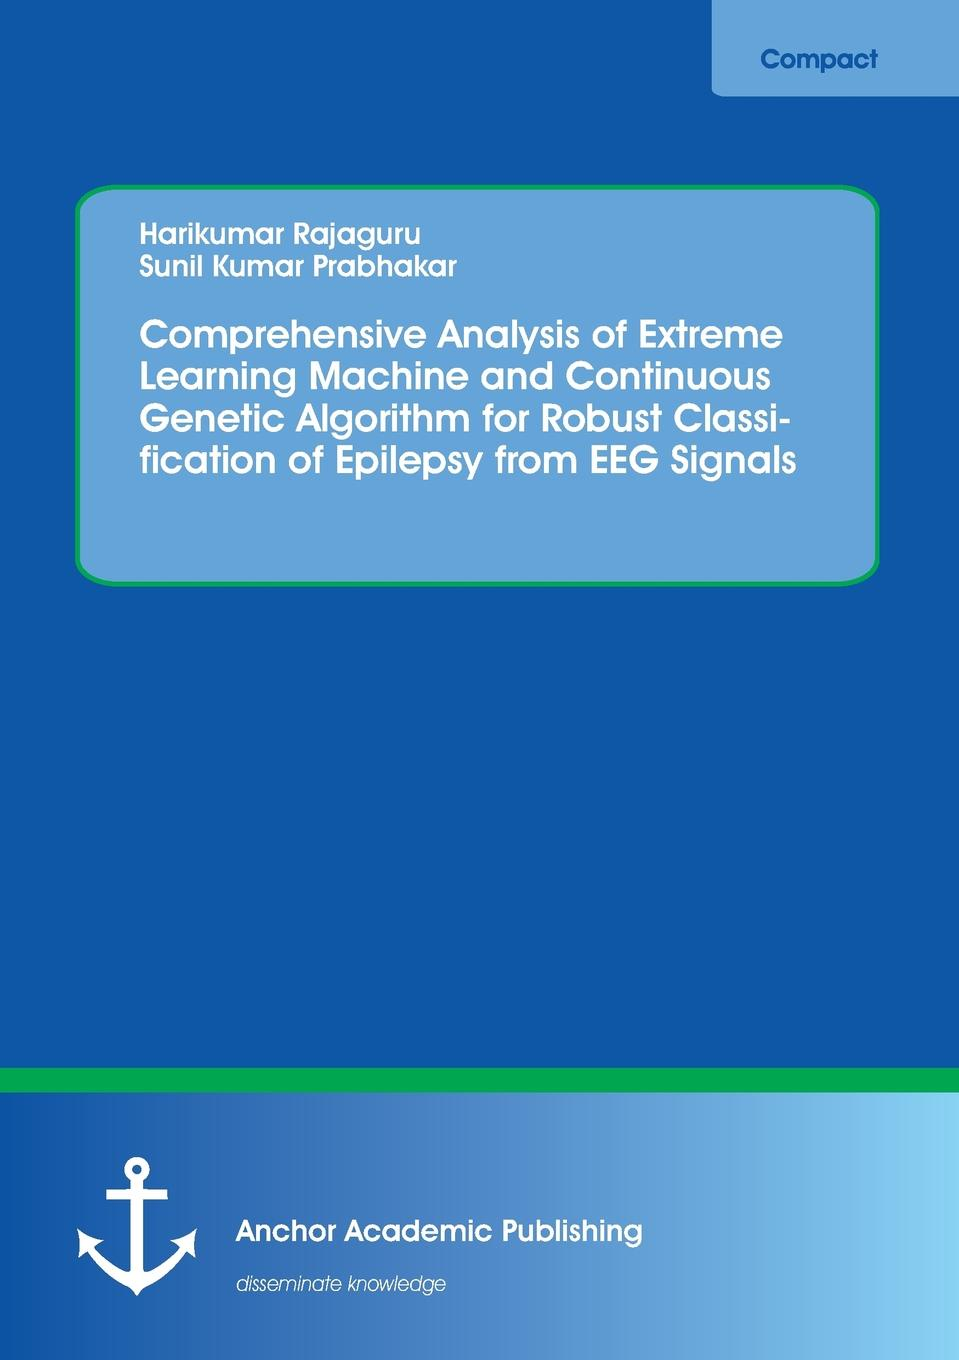 Harikumar Rajaguru, Sunil Kumar Prabhakar Comprehensive Analysis of Extreme Learning Machine and Continuous Genetic Algorithm for Robust Classification of Epilepsy from EEG Signals cascino gregory d adult epilepsy